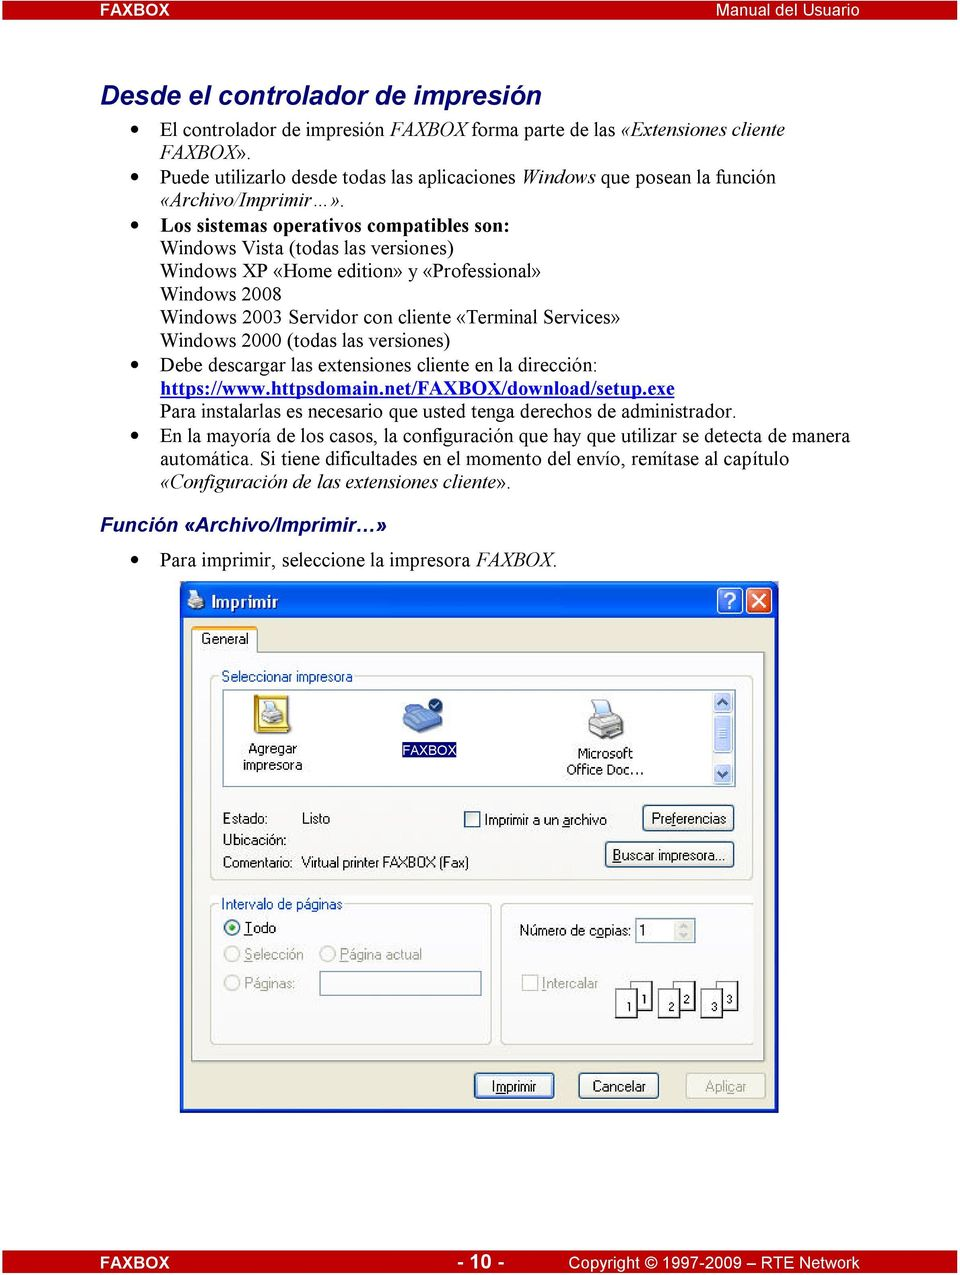 Los sistemas operativos compatibles son: Windows Vista (todas las versiones) Windows XP «Home edition» y «Professional» Windows 2008 Windows 2003 Servidor con cliente «Terminal Services» Windows 2000